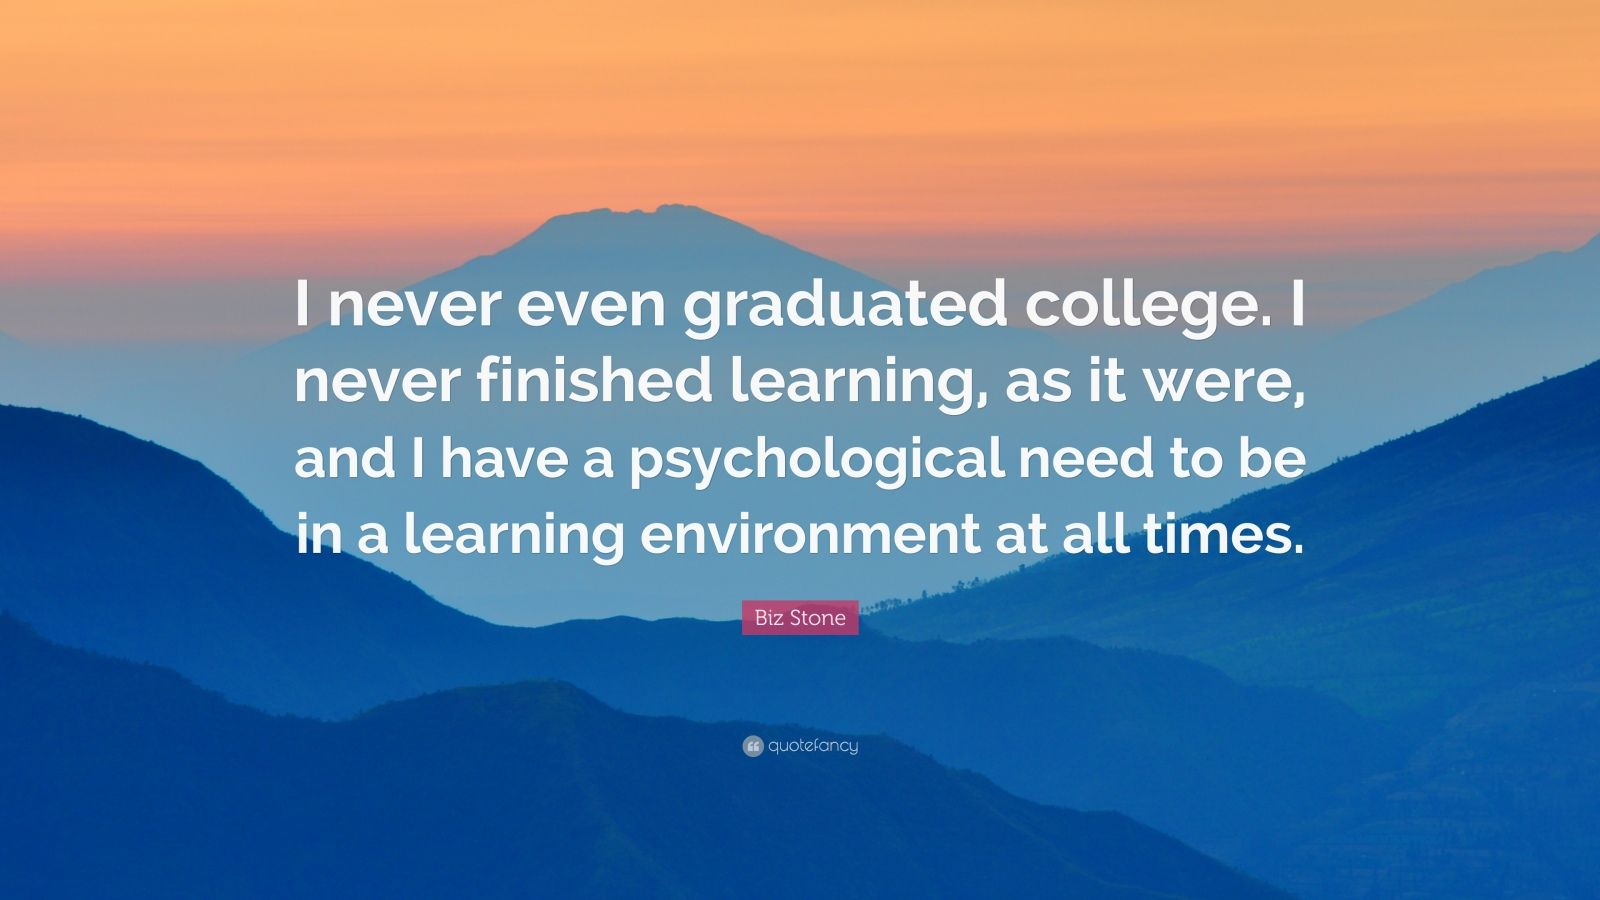 """Biz Stone Quote: """"I never even graduated college. I never finished learning, as it were, and I have a psychological need to be in a learning environment at all times."""""""